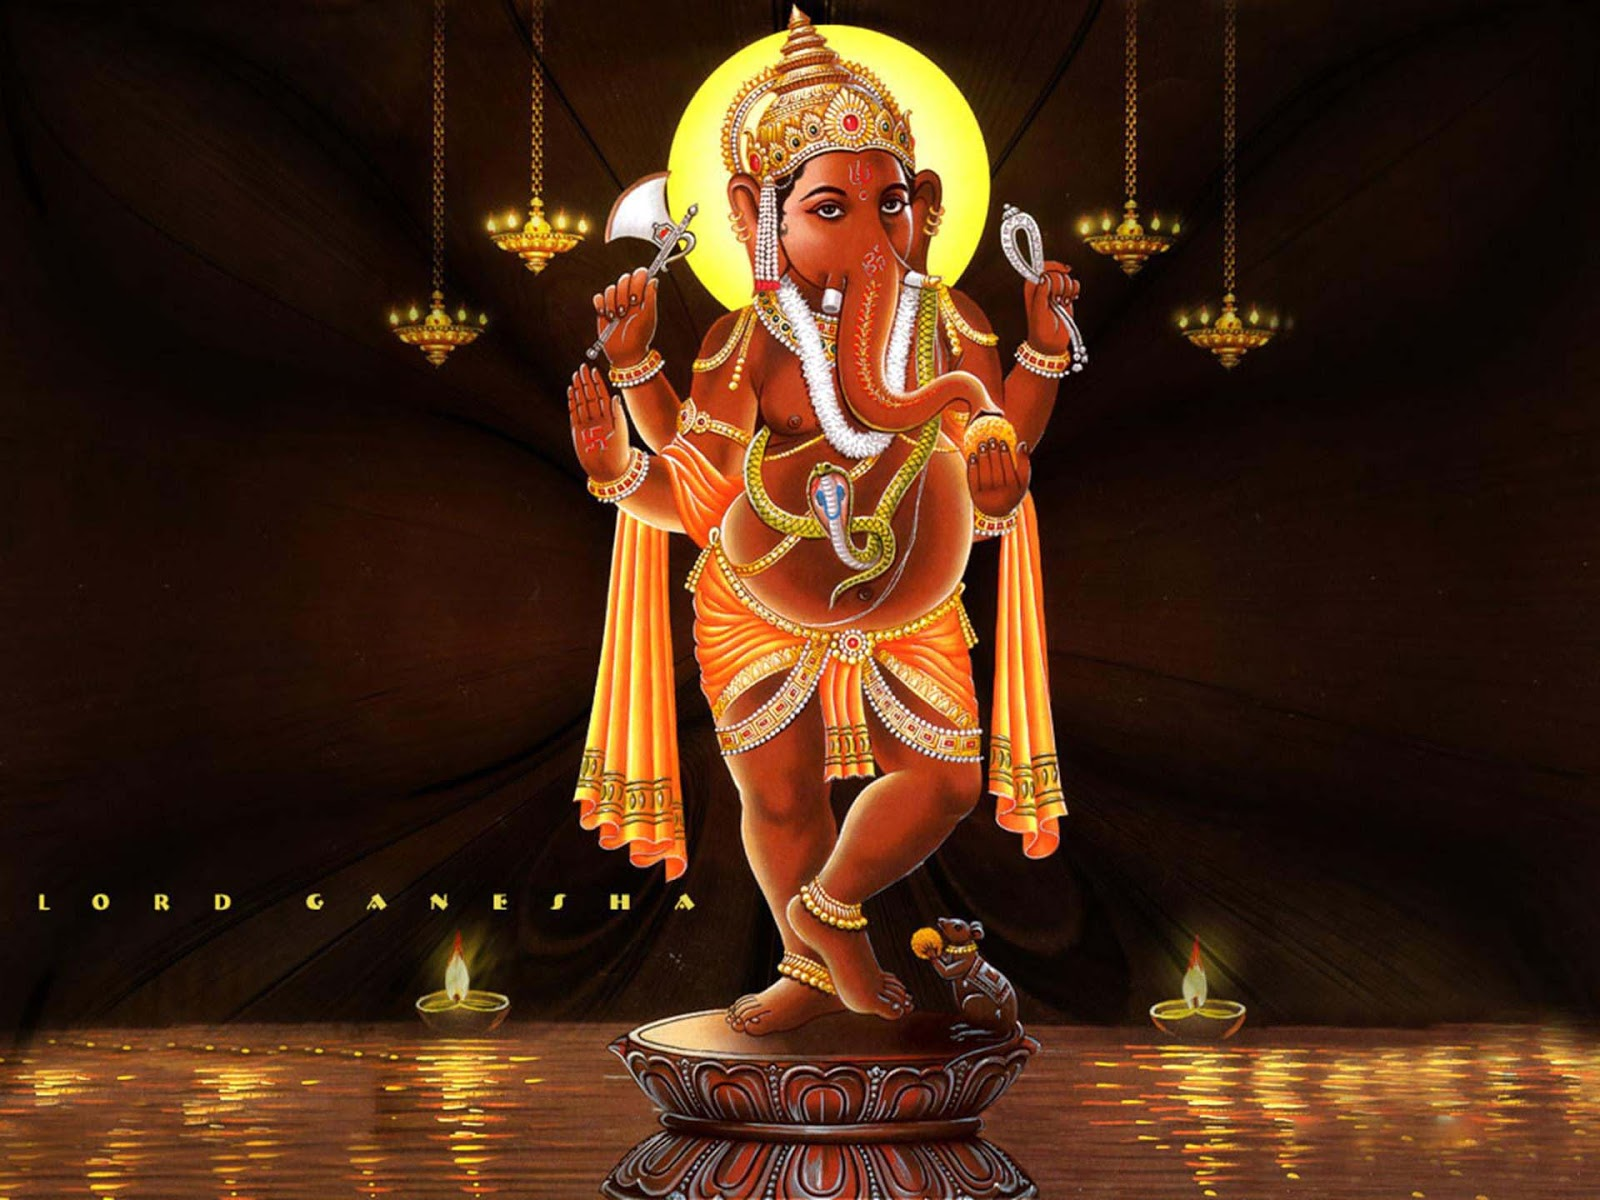 Lord Ganesha Latest Hd Images Free Downloads: Ganesha HD New Wallpapers Free Download